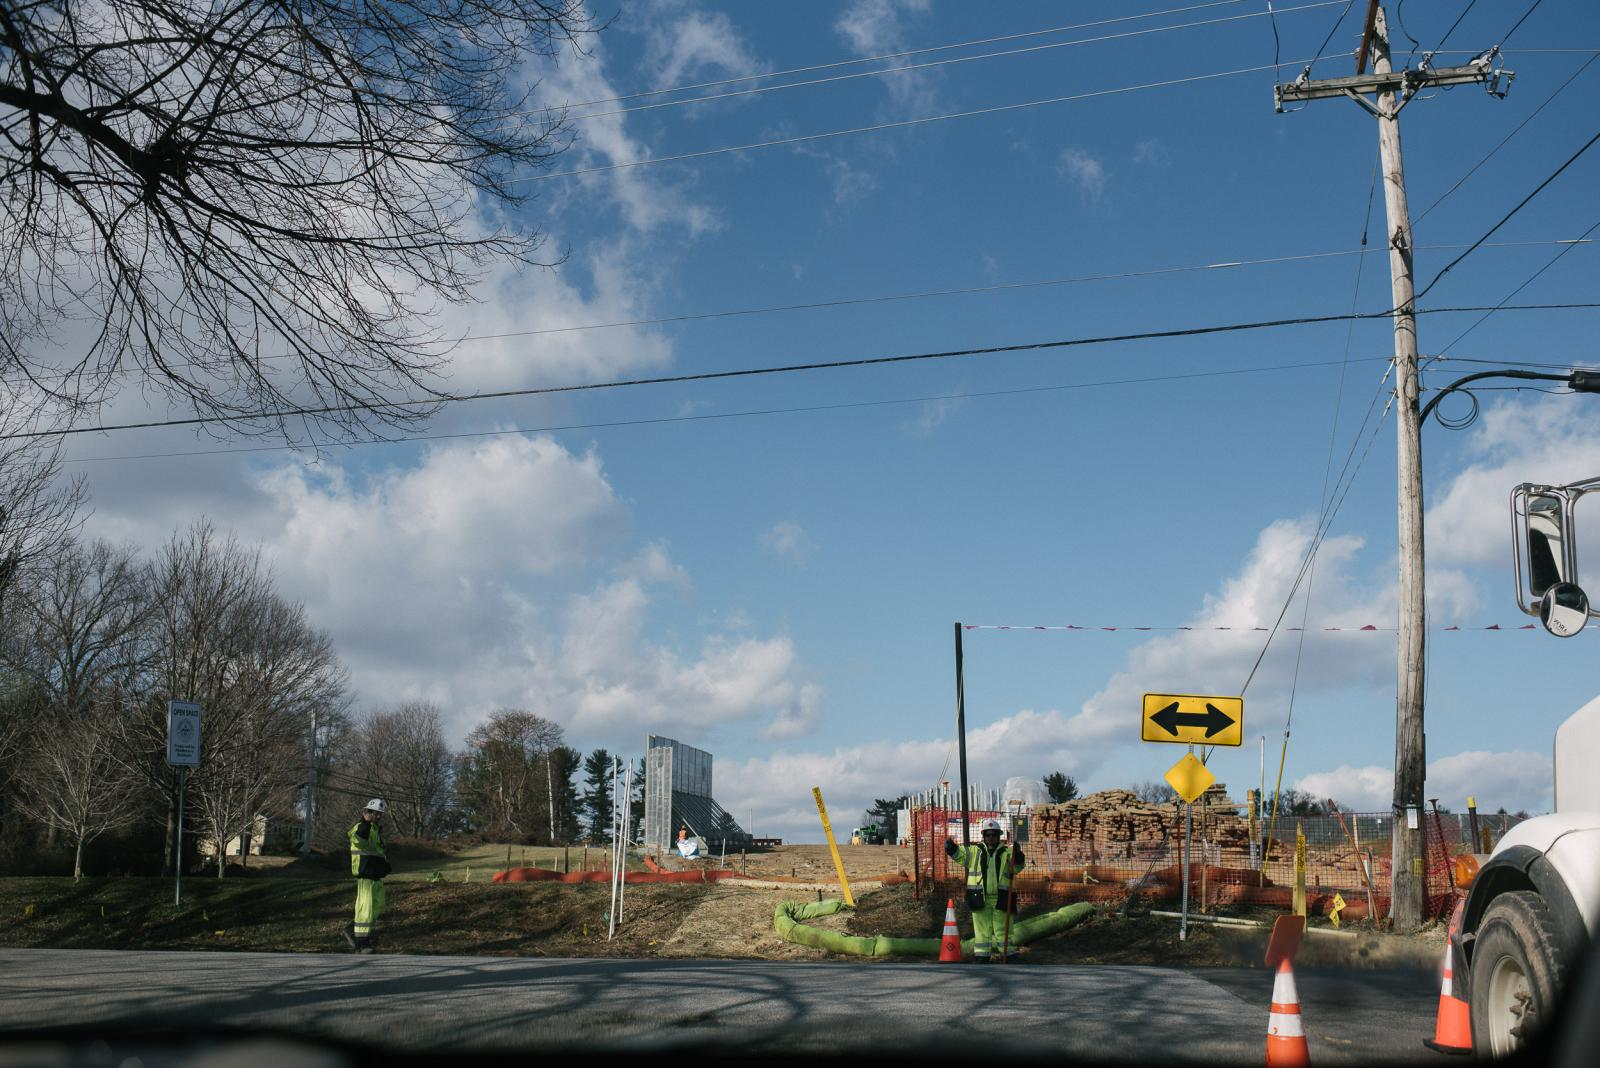 The site of the Mariner East Pipeline construction can be seen at Sleighton Park in Media, PA. on Thursday, January 16, 2020. Those living nearby believe the construction work from the pipeline is causing people to have contaminated water. Photo by Hannah Yoon